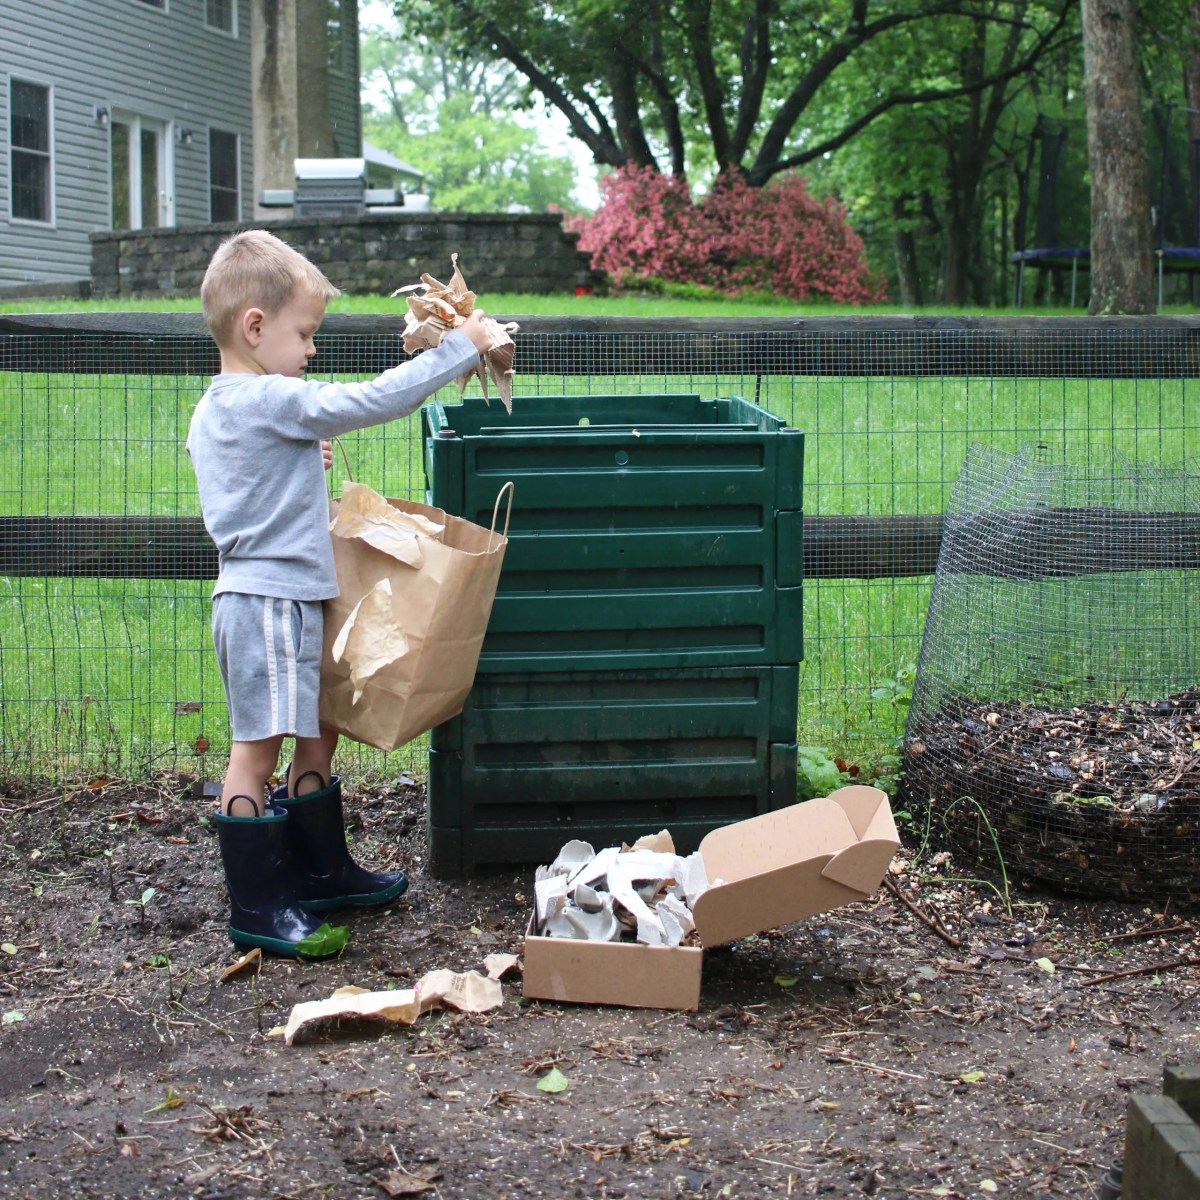 Composting offers so many benefits, and some are less obvious than others. Read on for some great lessons kids (and parents...let's be honest) can learn from composting.